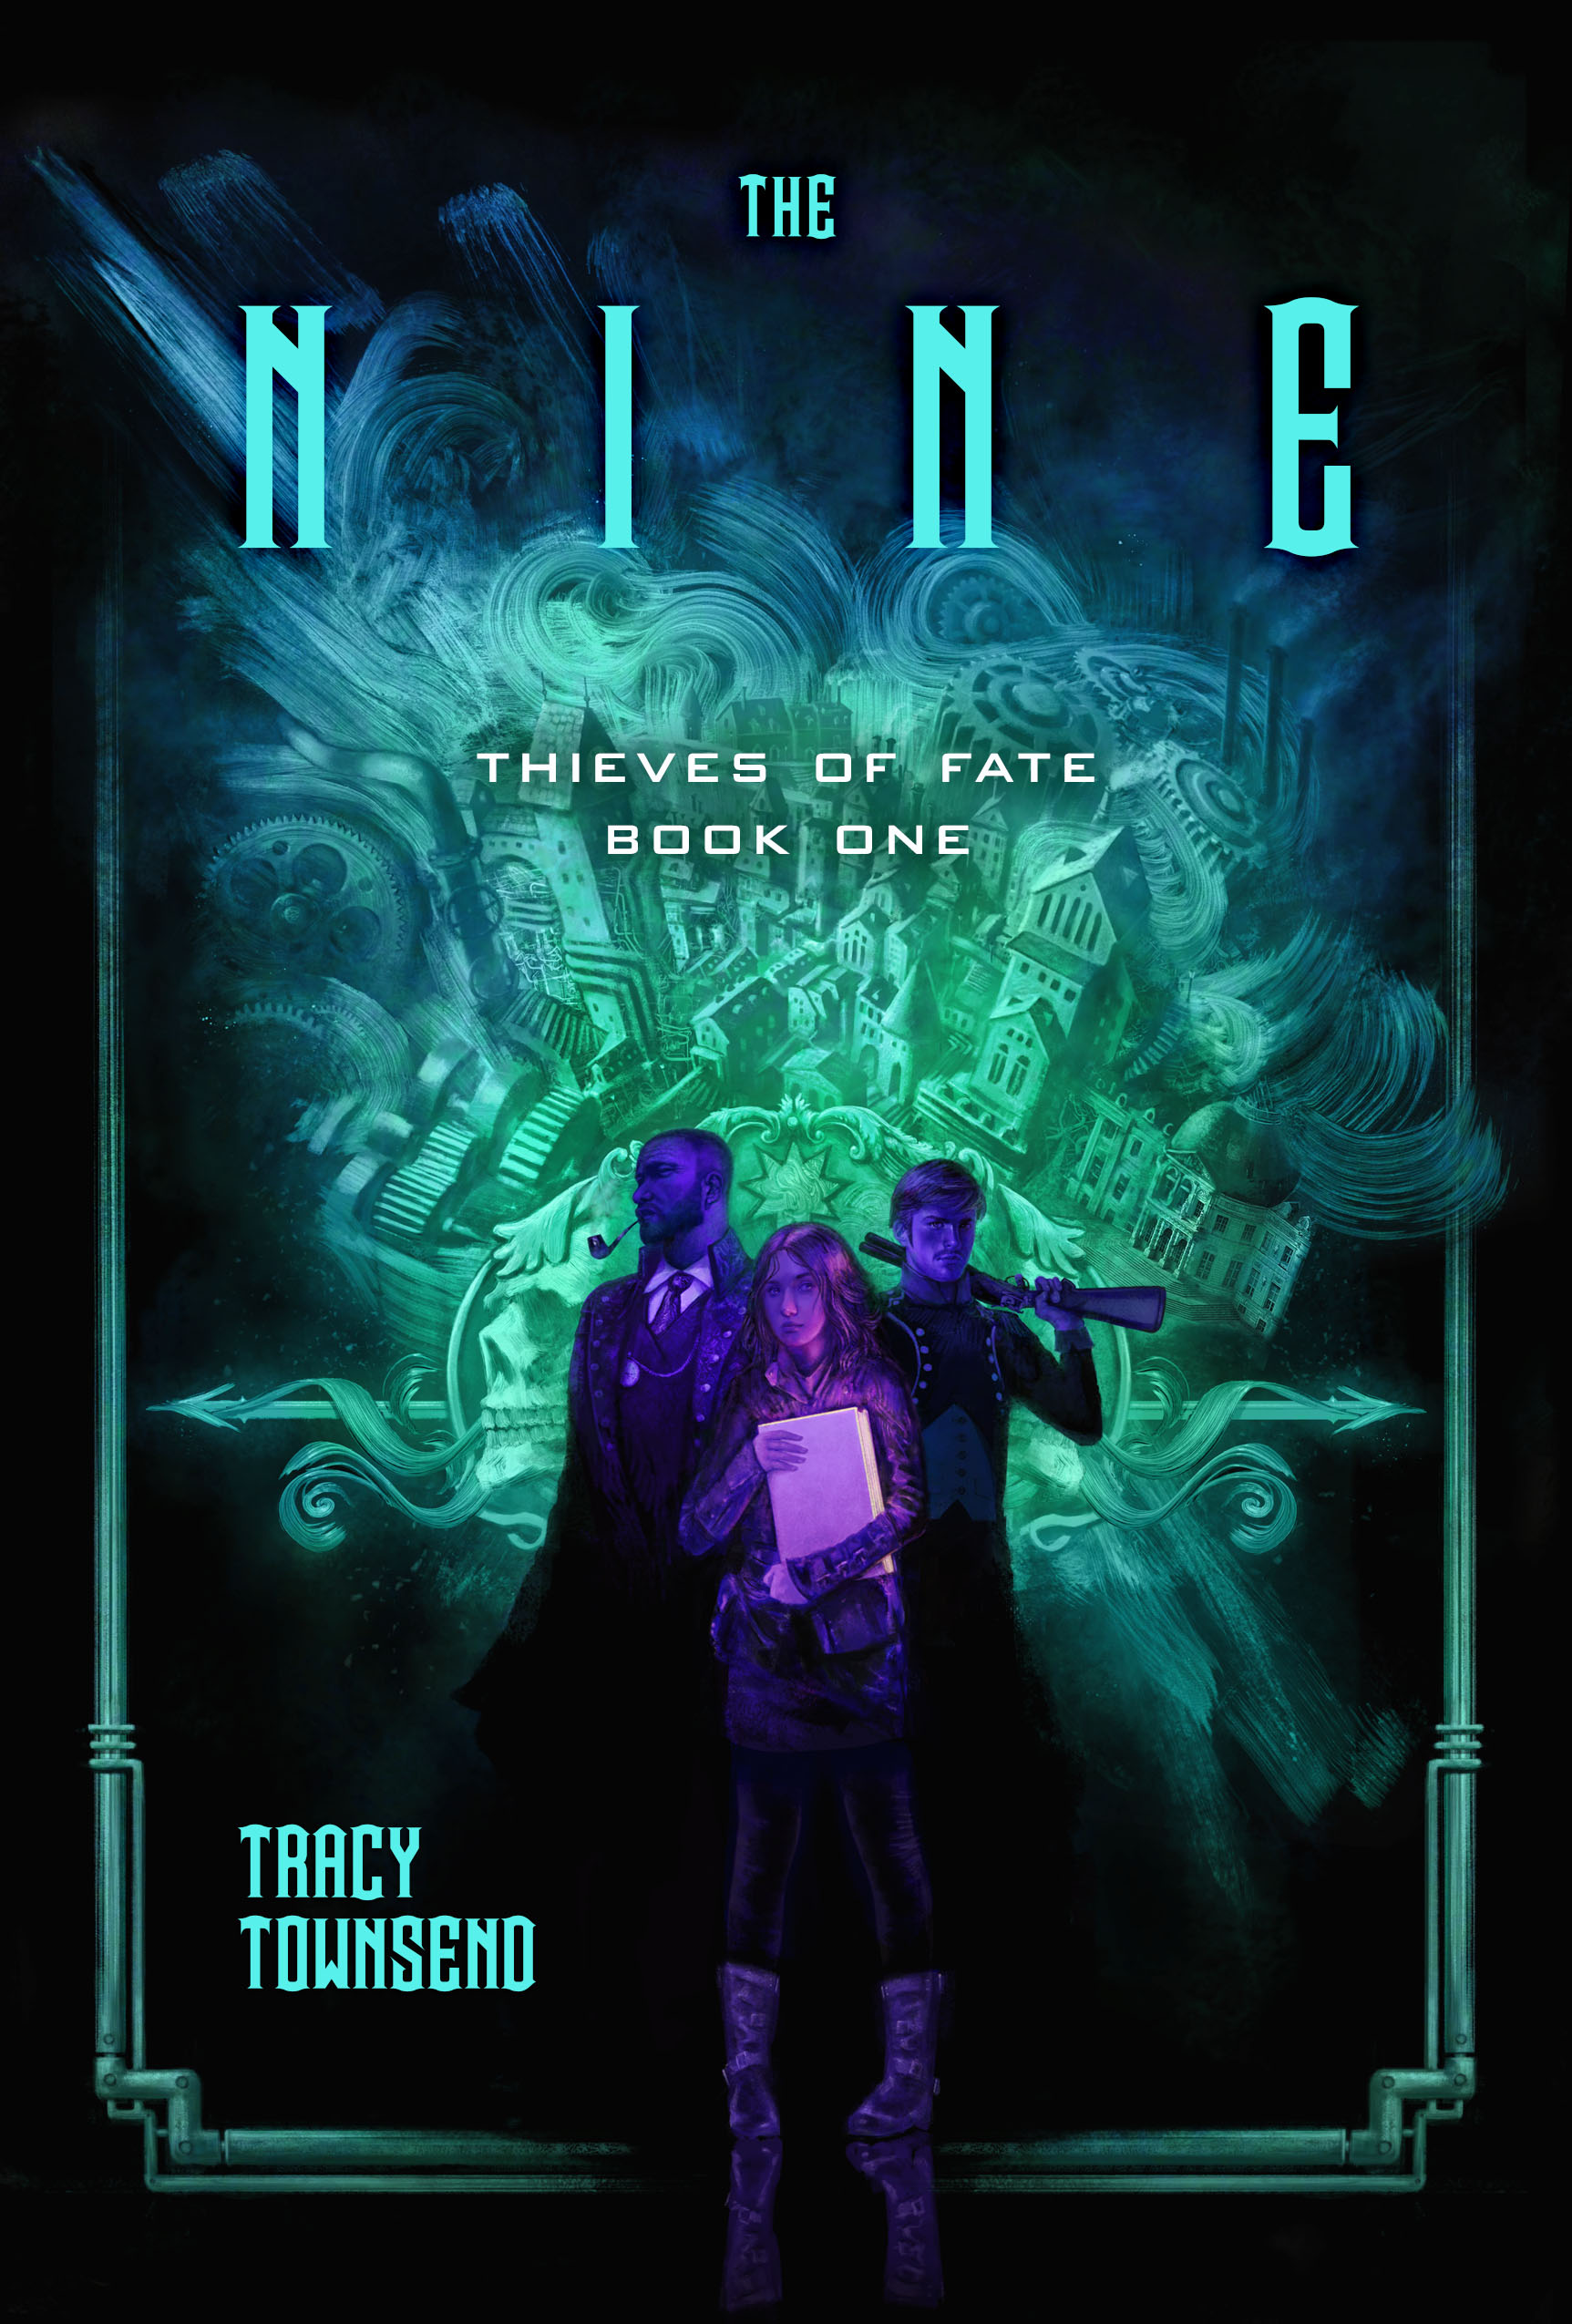 Tracy Townsend: Five Things I Learned Writing The Nine